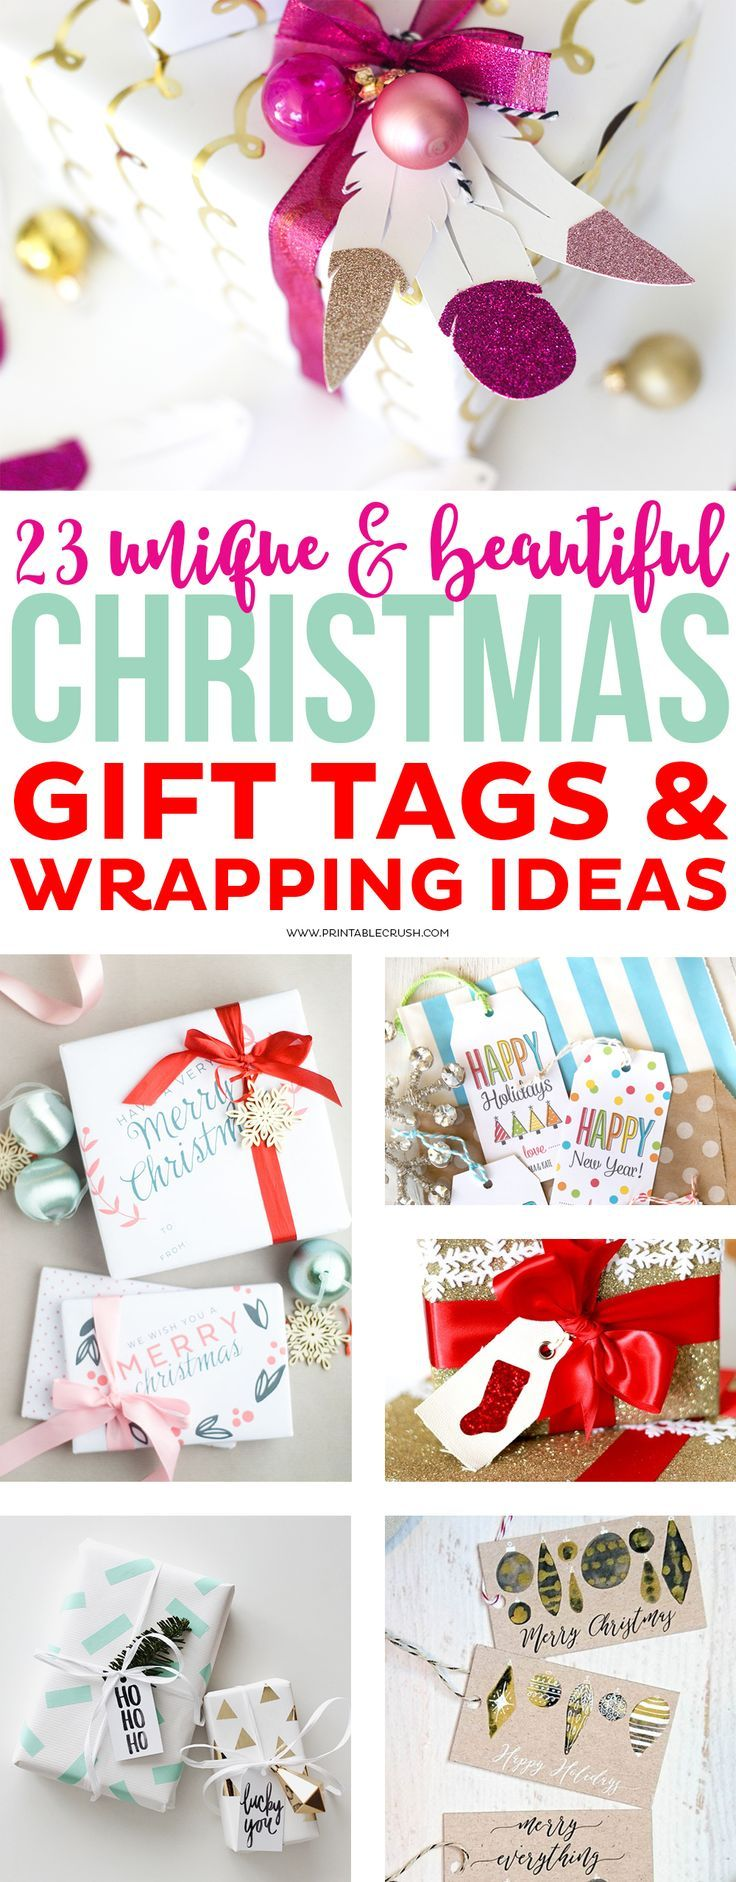 You 39 Ll Love All These 23 Unique Christmas Gift Tags And